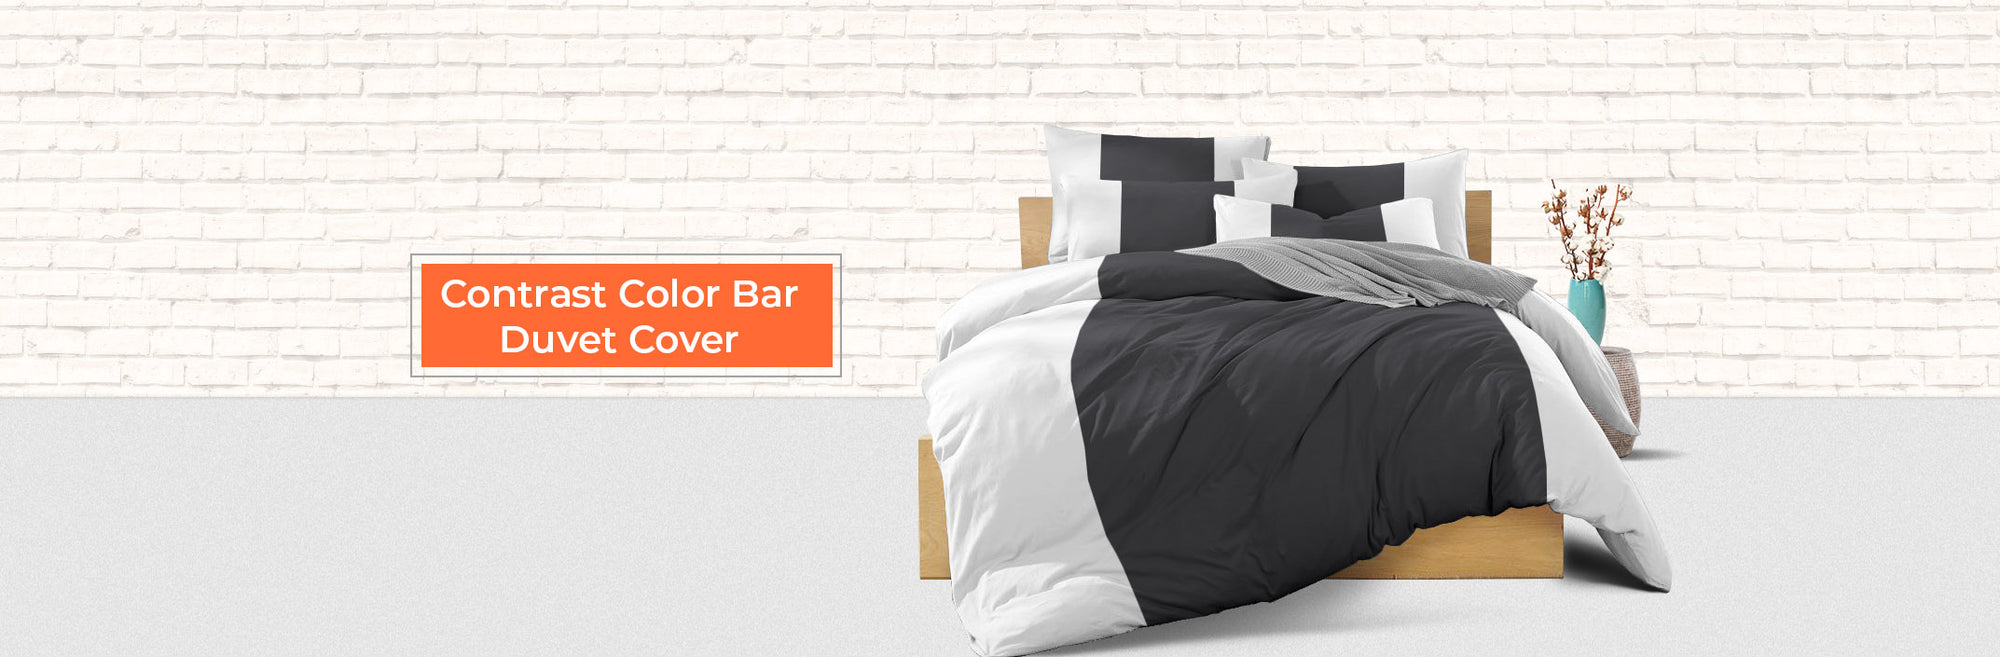 Contrast Colour Bar Duvet Cover